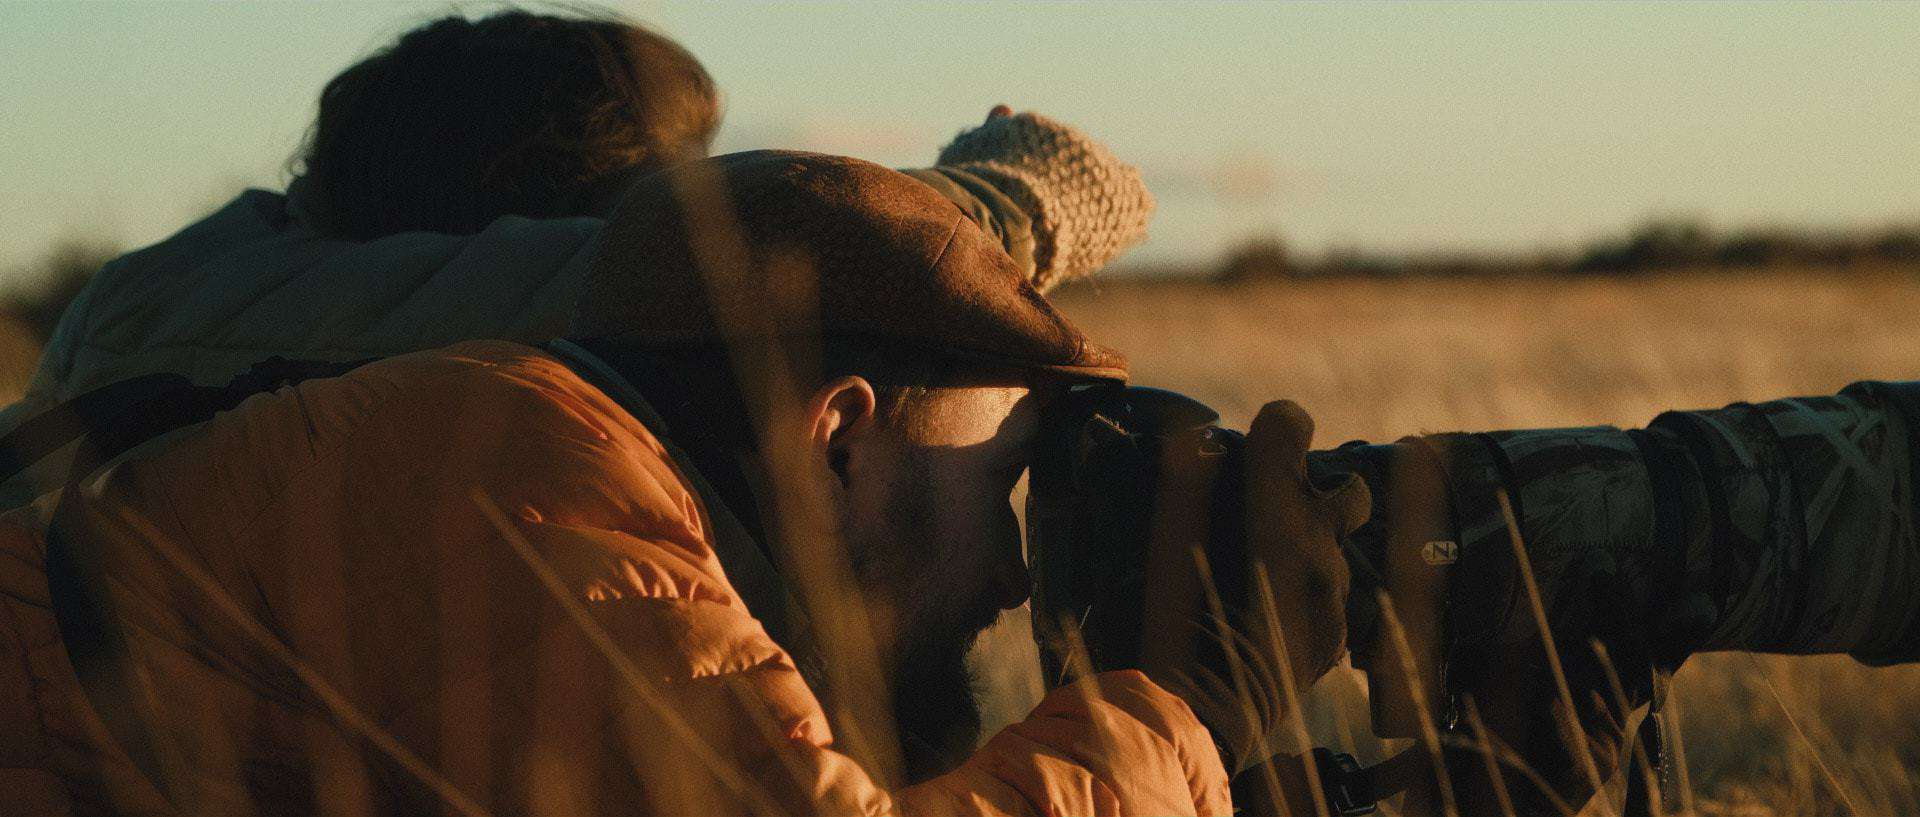 "Fine-art photographer Eliseo Miciu and Violeta Folguera chase the elusive Patagonian wild horses - Still frame from the documentary ""Land of The Wind"""